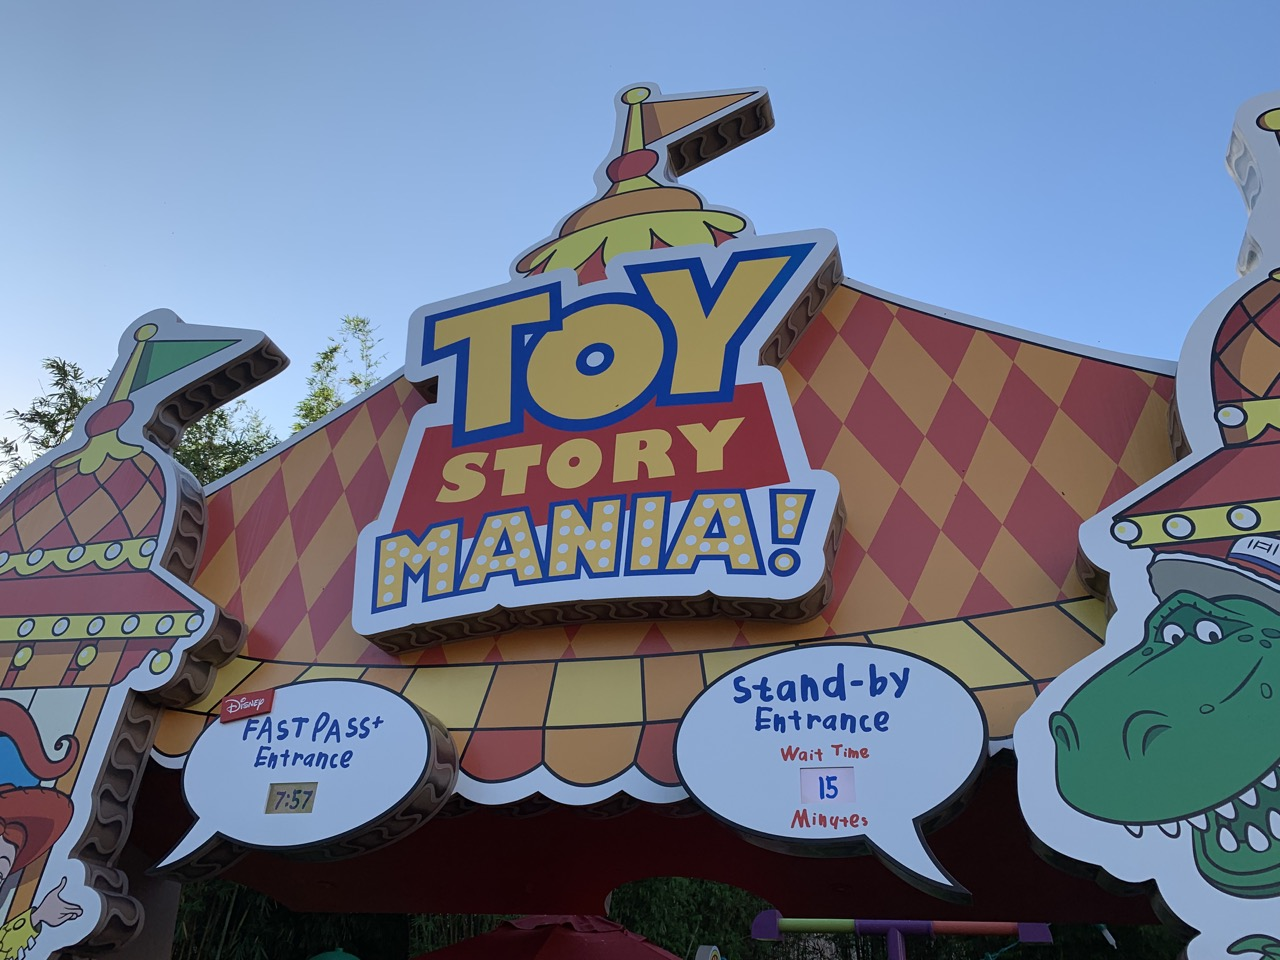 disney world trip report early summer 2019 day two 21 toy story mania.jpeg